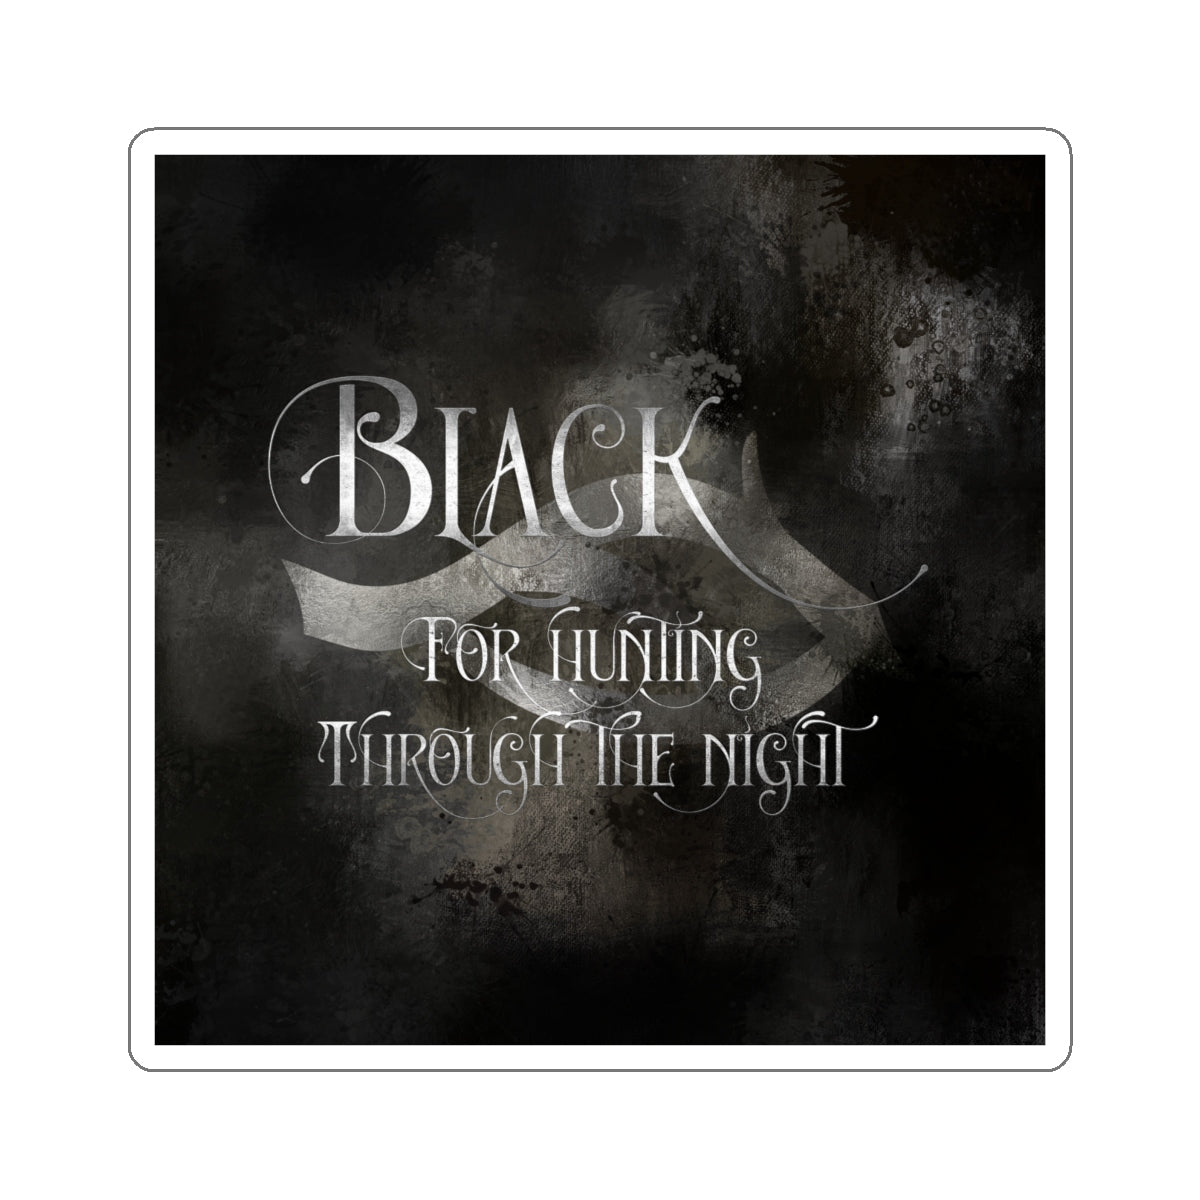 BLACK for hunting through the night. Shadowhunter Children's Rhyme Sticker - LitLifeCo.